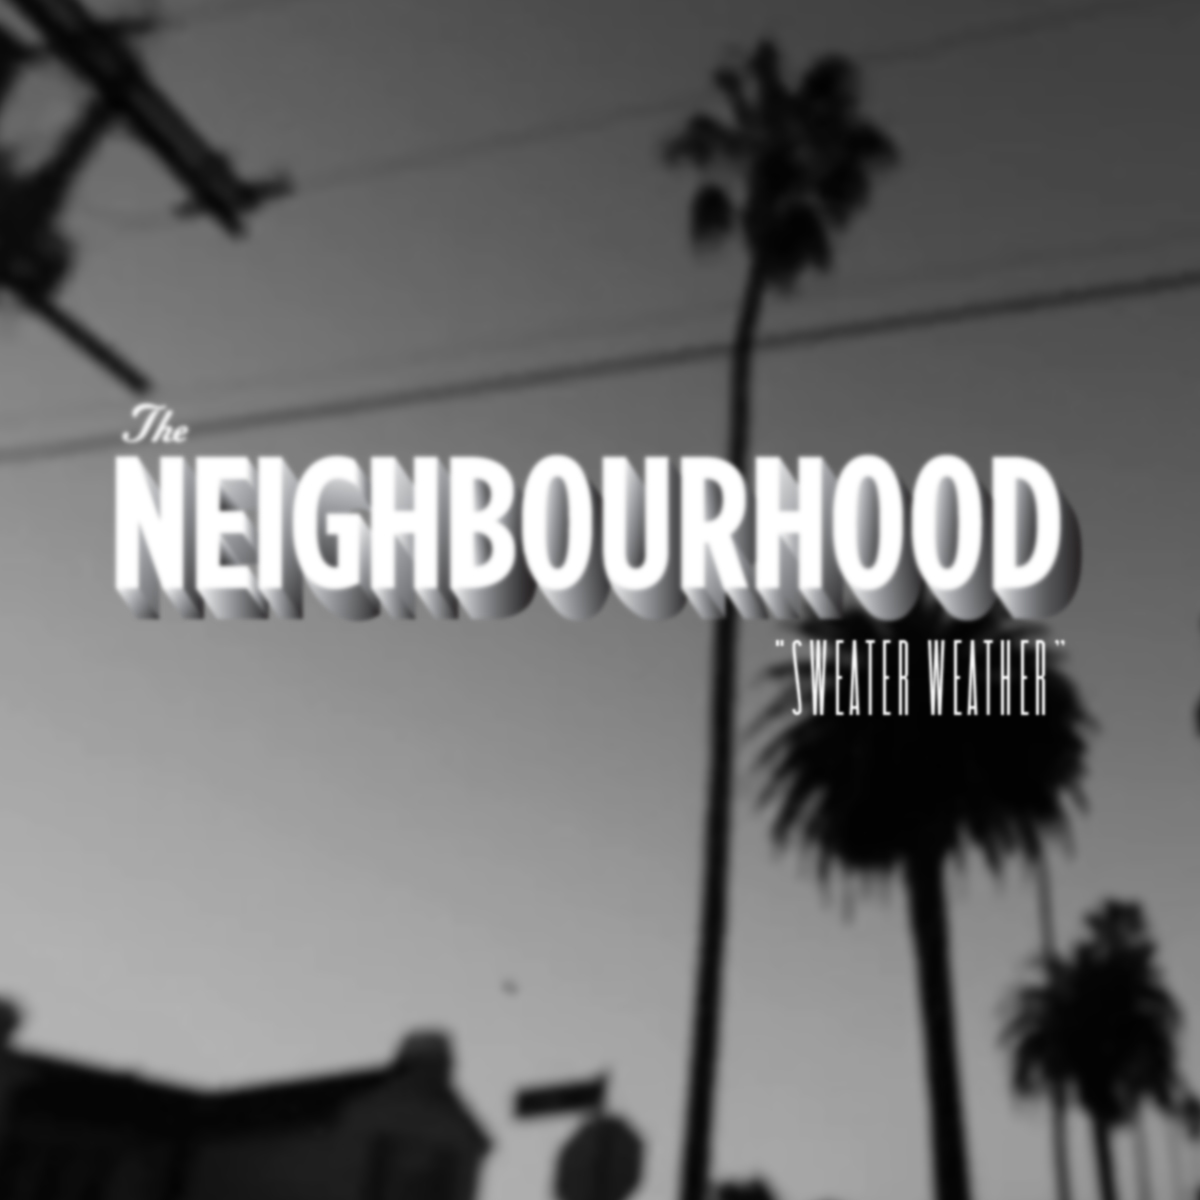 Sweater_Weather_(The_Neighborhood_single_cover)